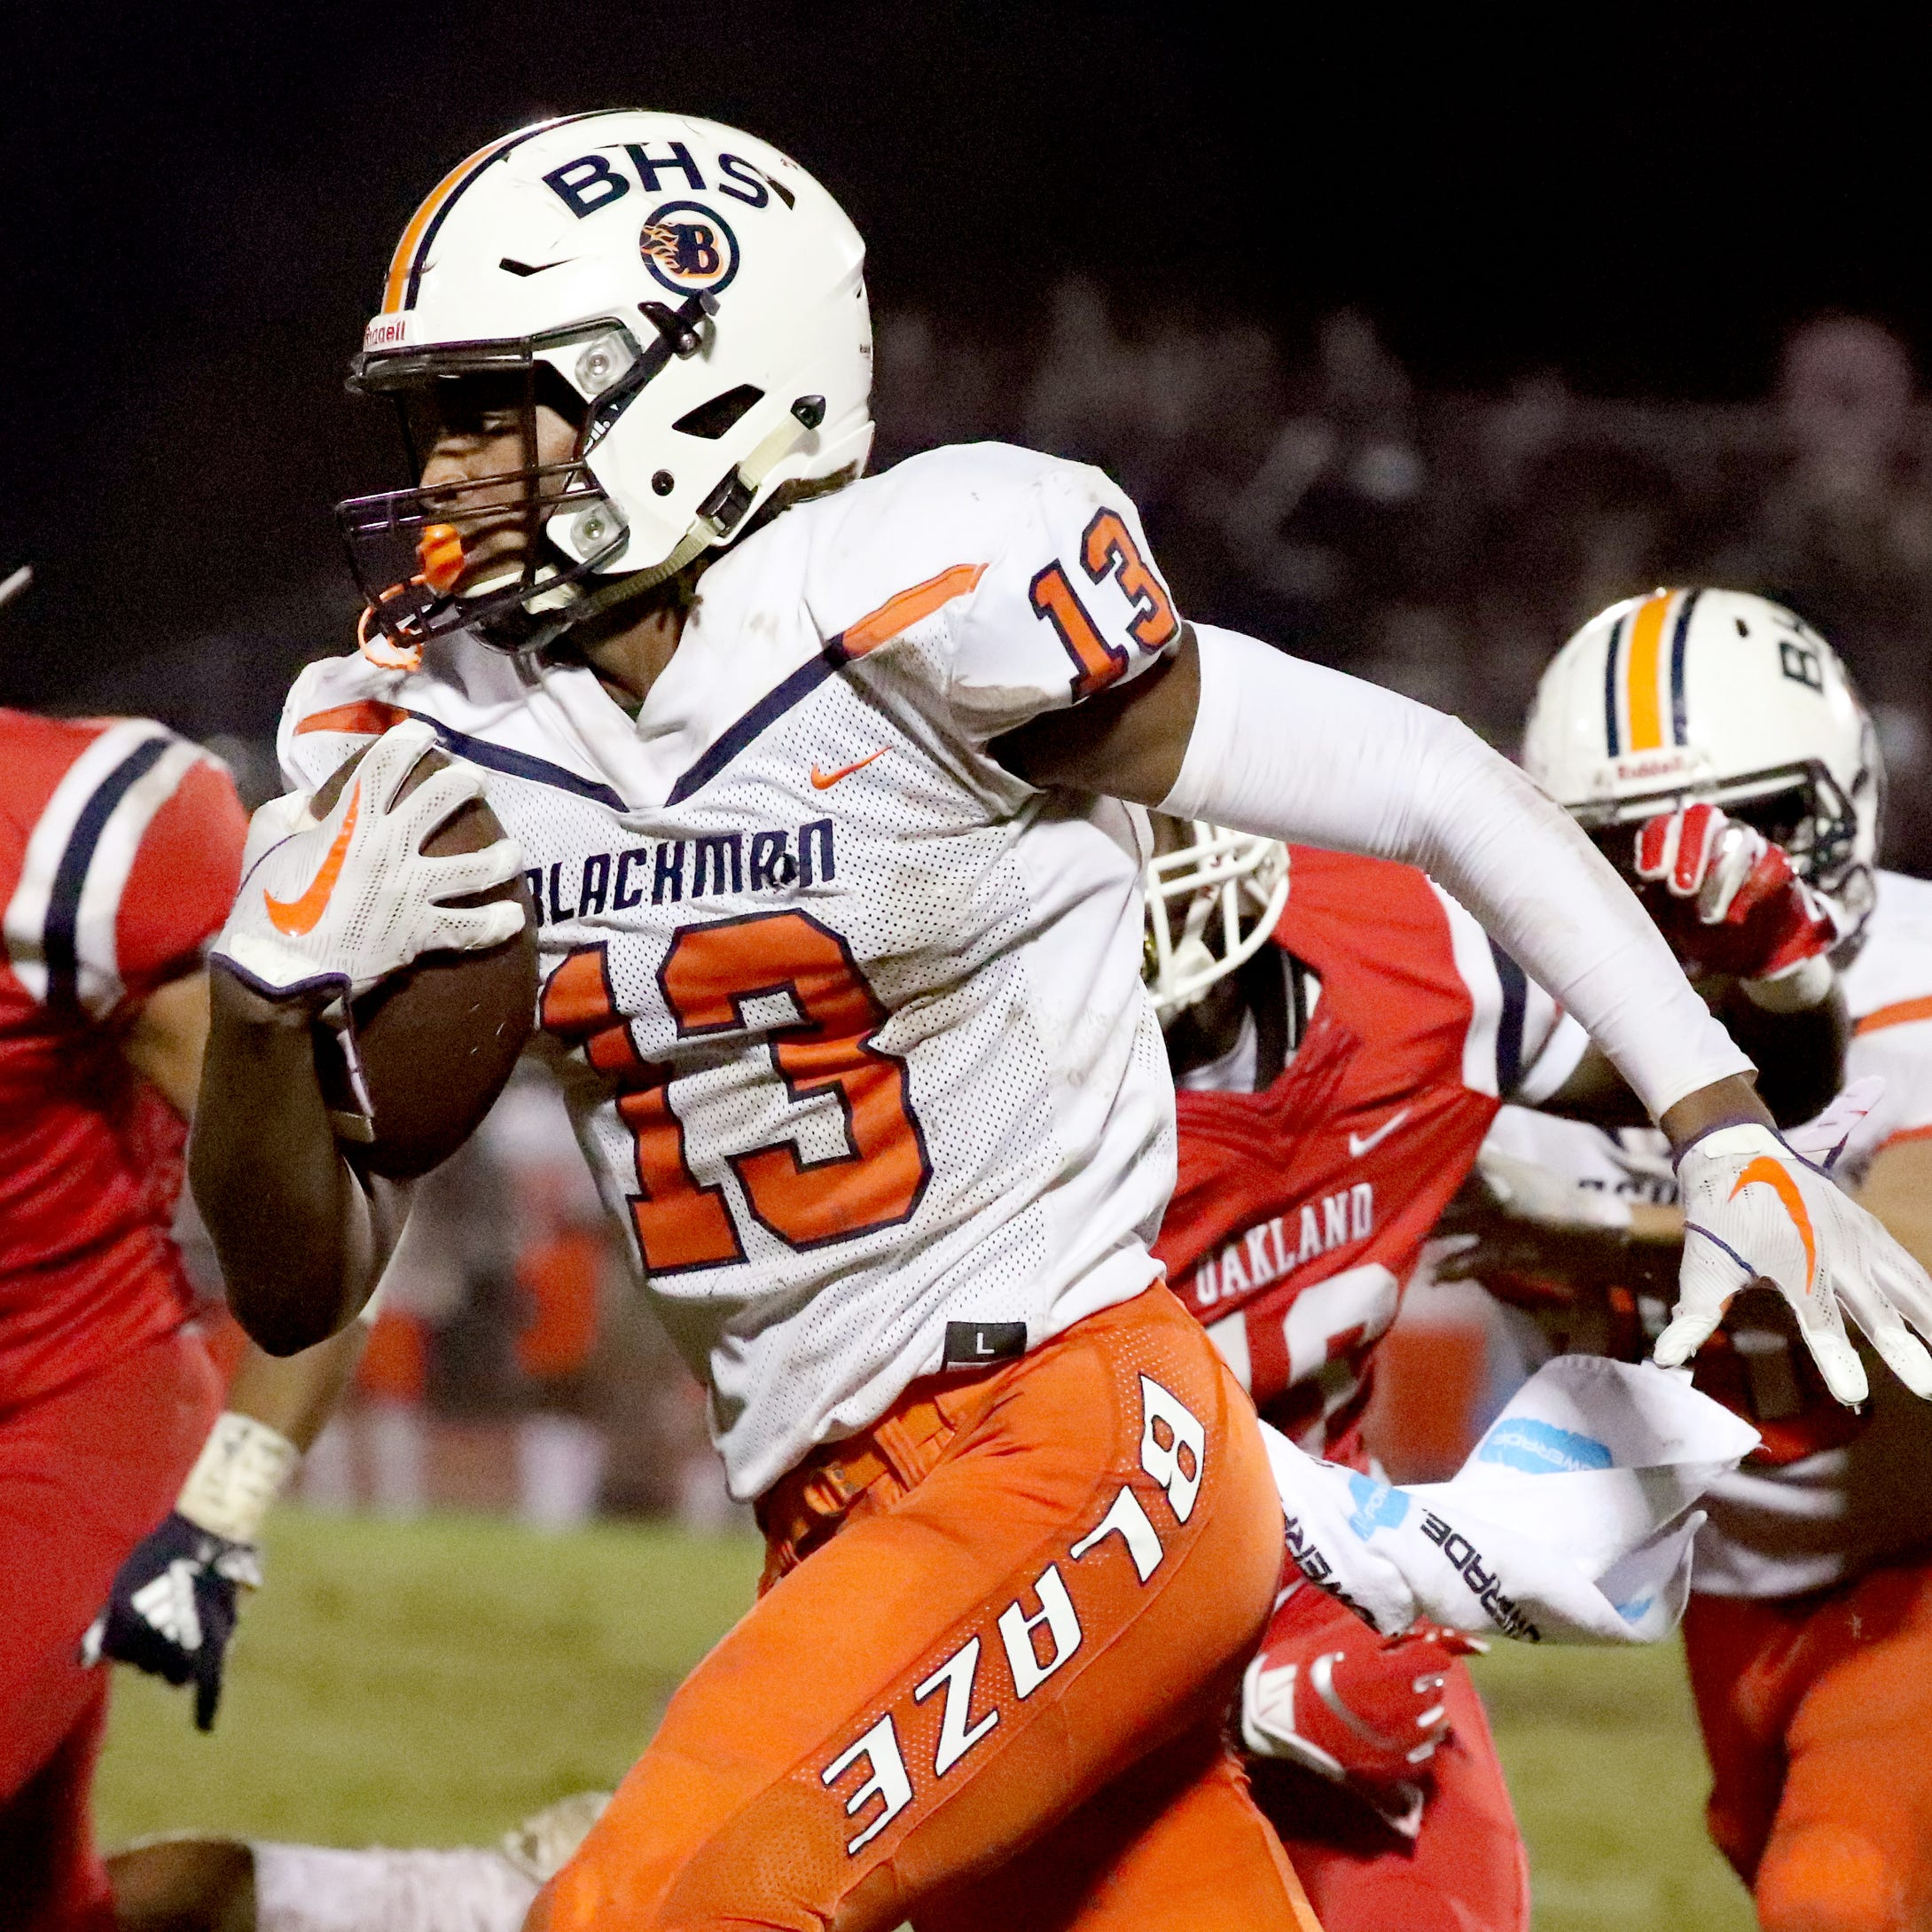 Blackman's Trey Knox suffers ankle injury; will visit Tennessee Vols on Saturday